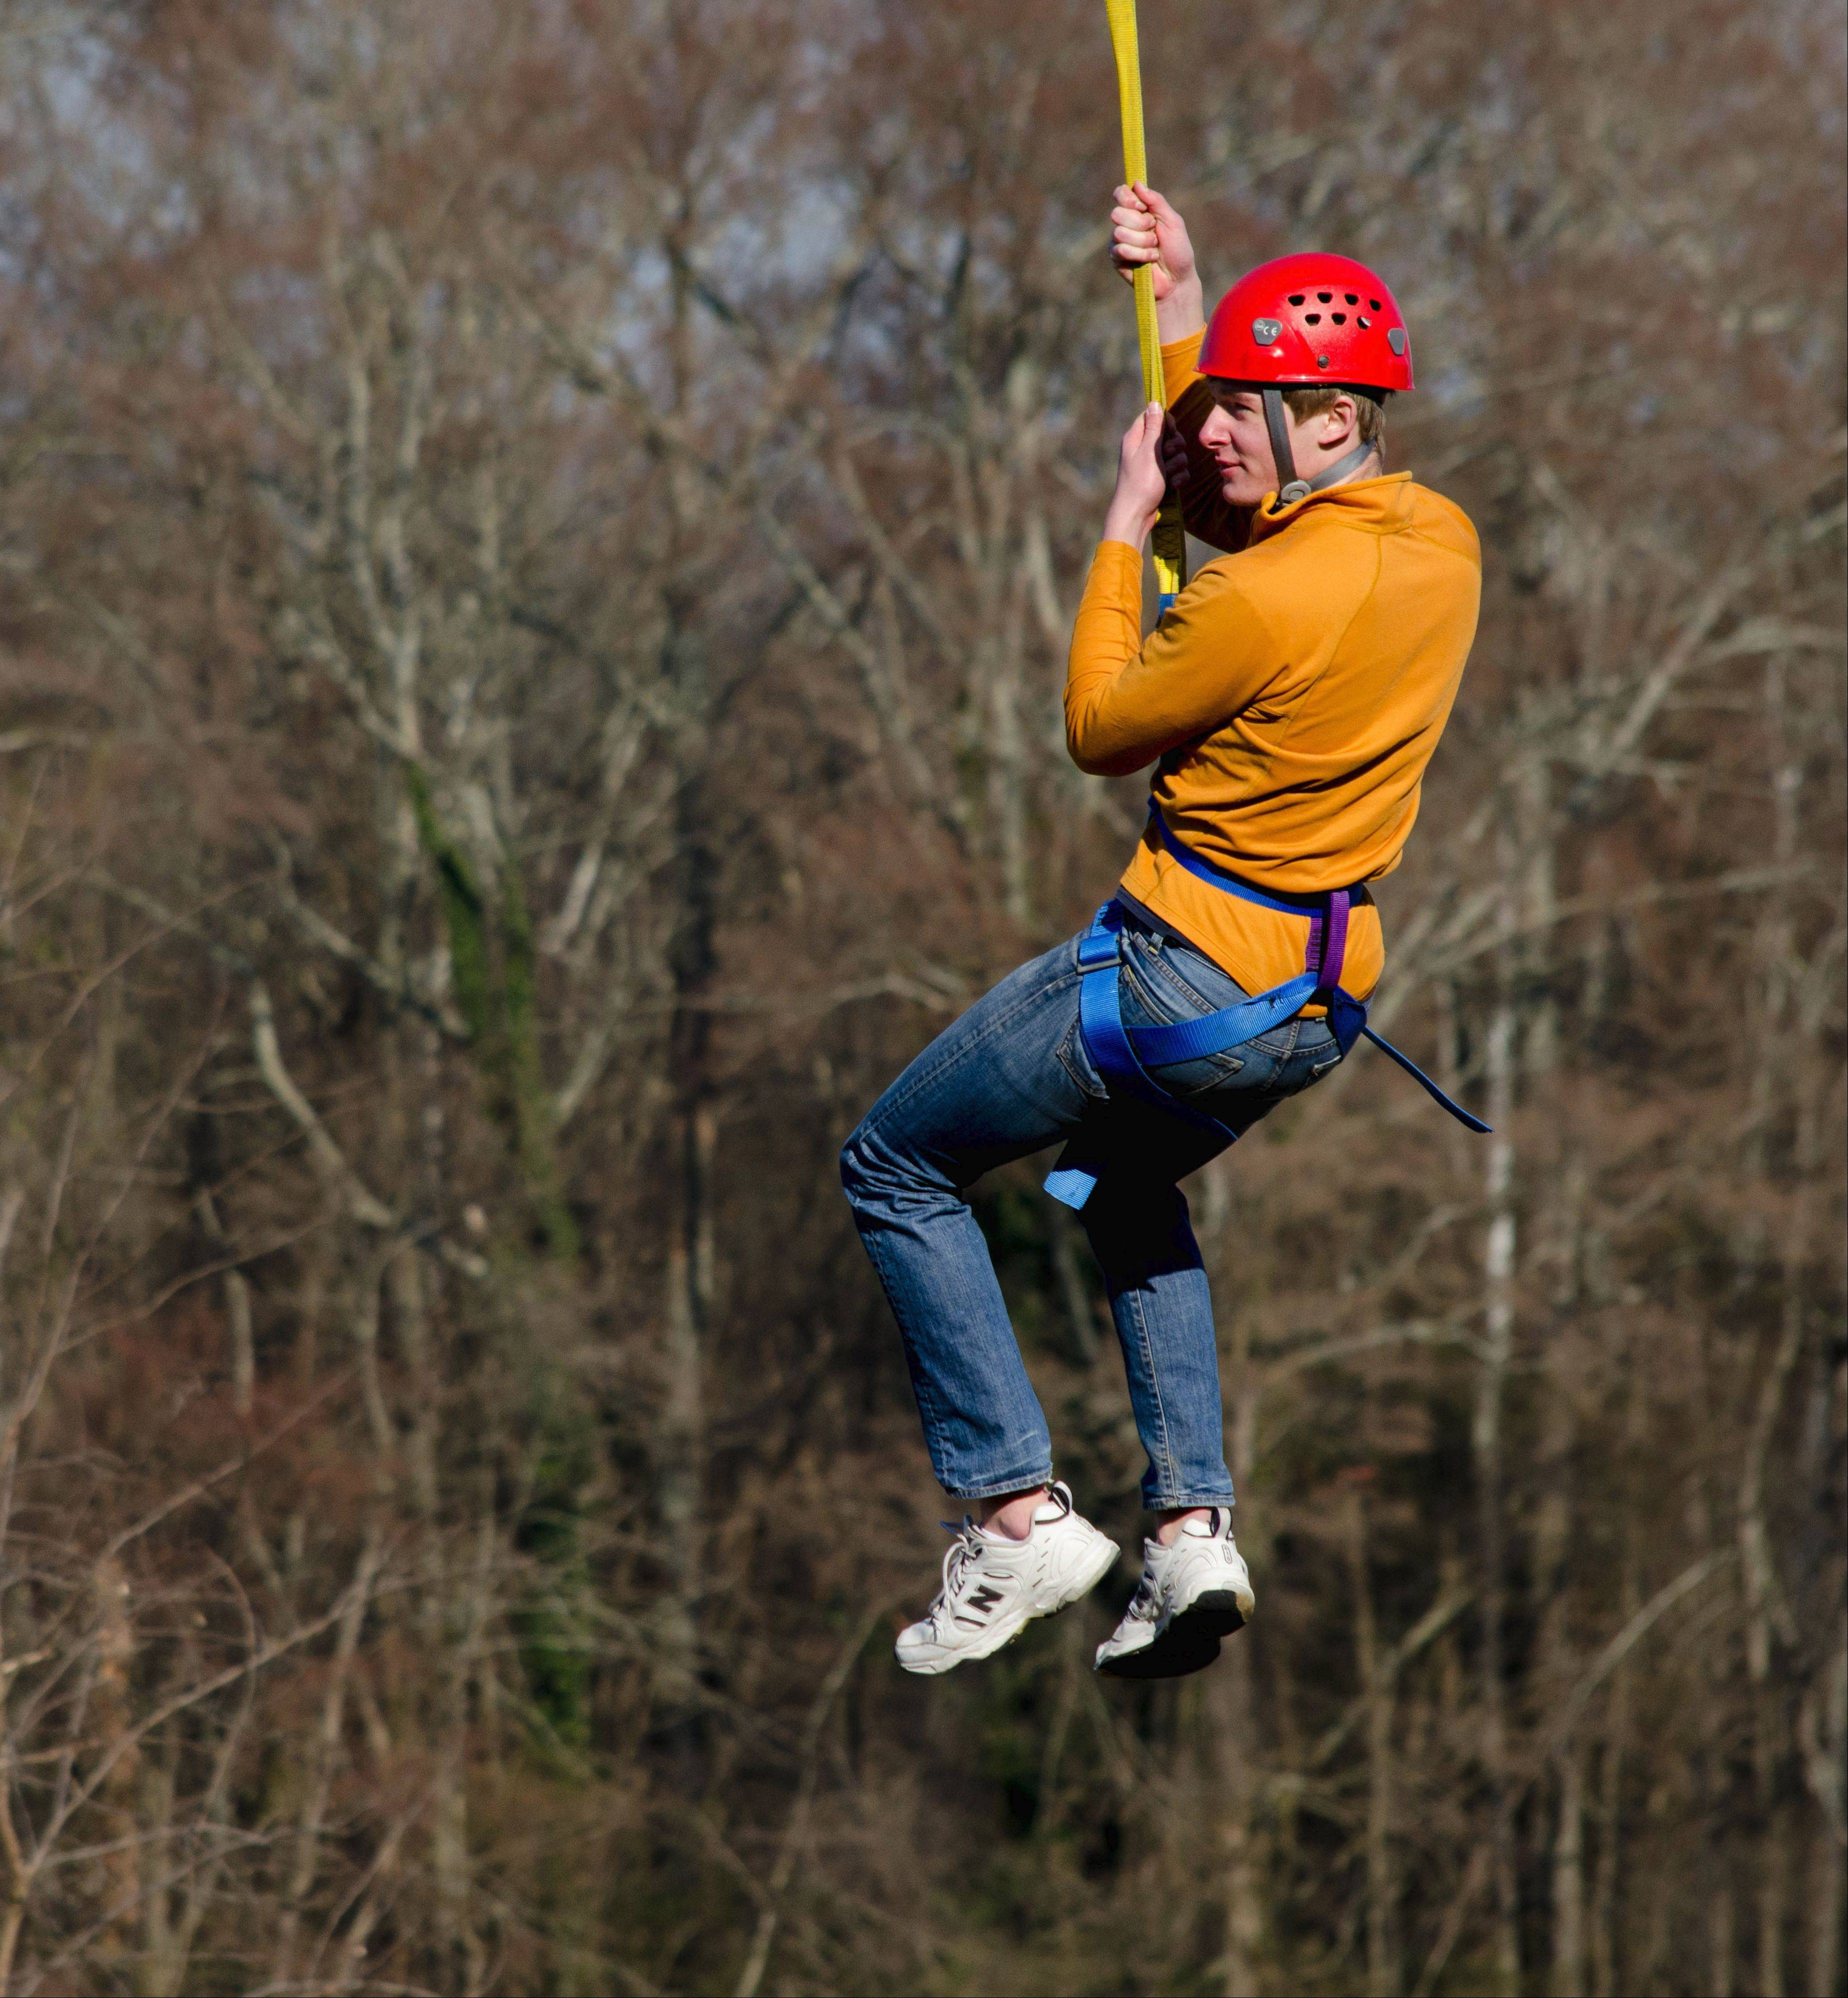 Charlie Sinkler of Des Plaines gets a turn on the zip line at the Honeywell Leadership Challenge.